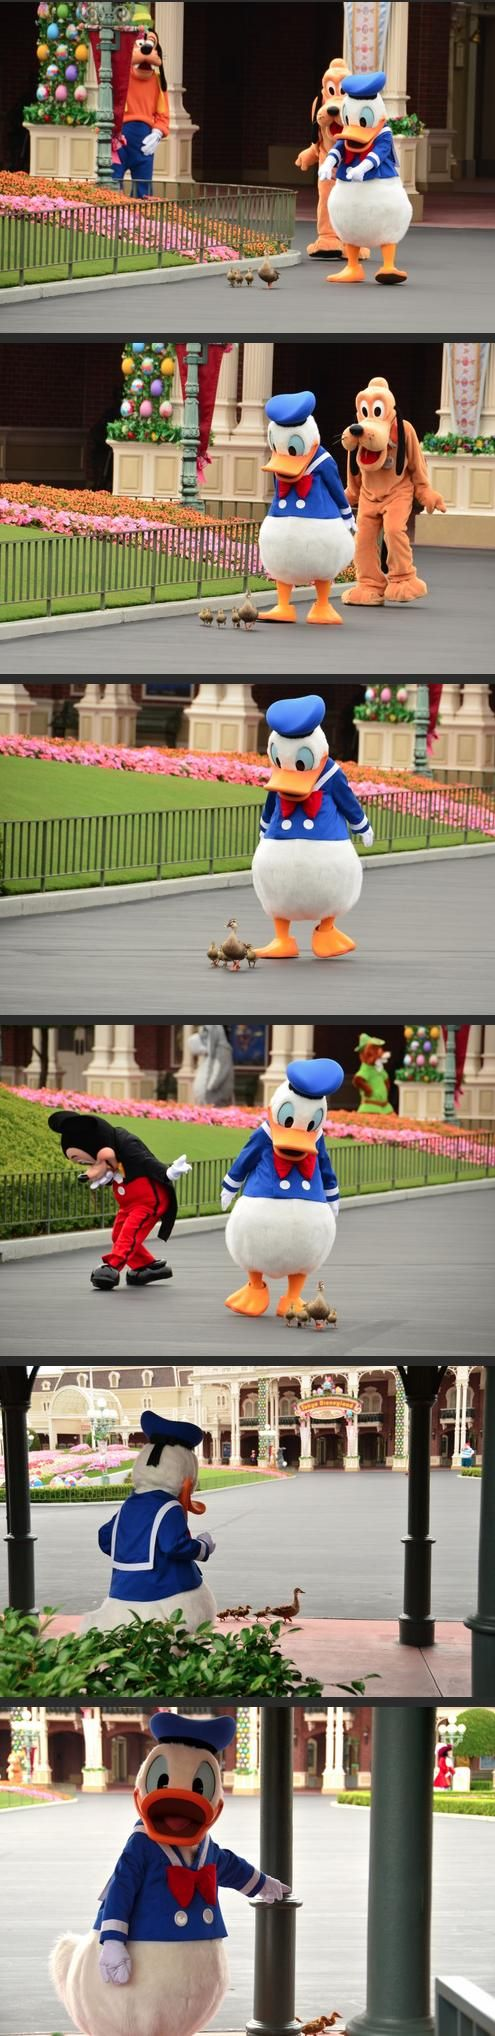 Disney is a Magical Place (30 Pics)